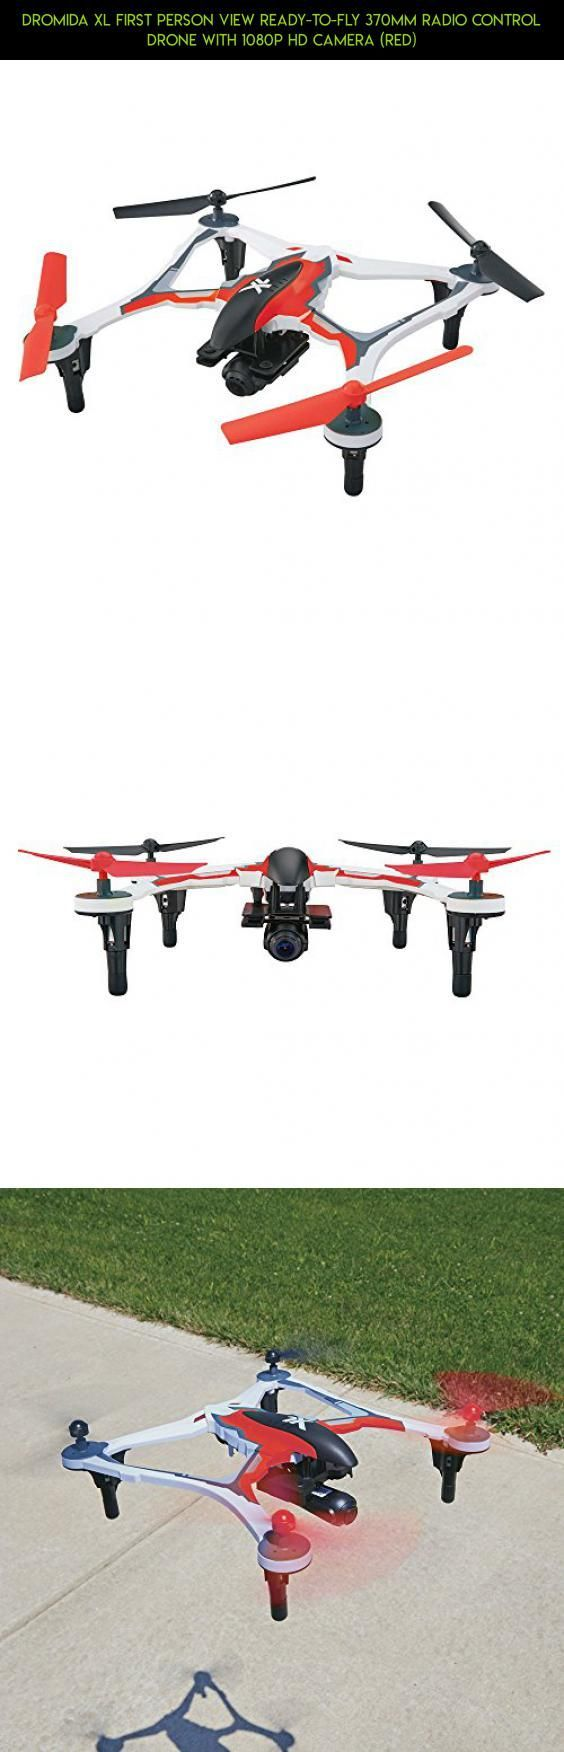 Dromida XL First Person View Ready-to-Fly 370mm Radio Control Drone with 1080p HD Camera (Red) #2s #camera #kit #technology #parts #products #tech #drone #fpv #gadgets #dromida #lipo #racing #plans #shopping